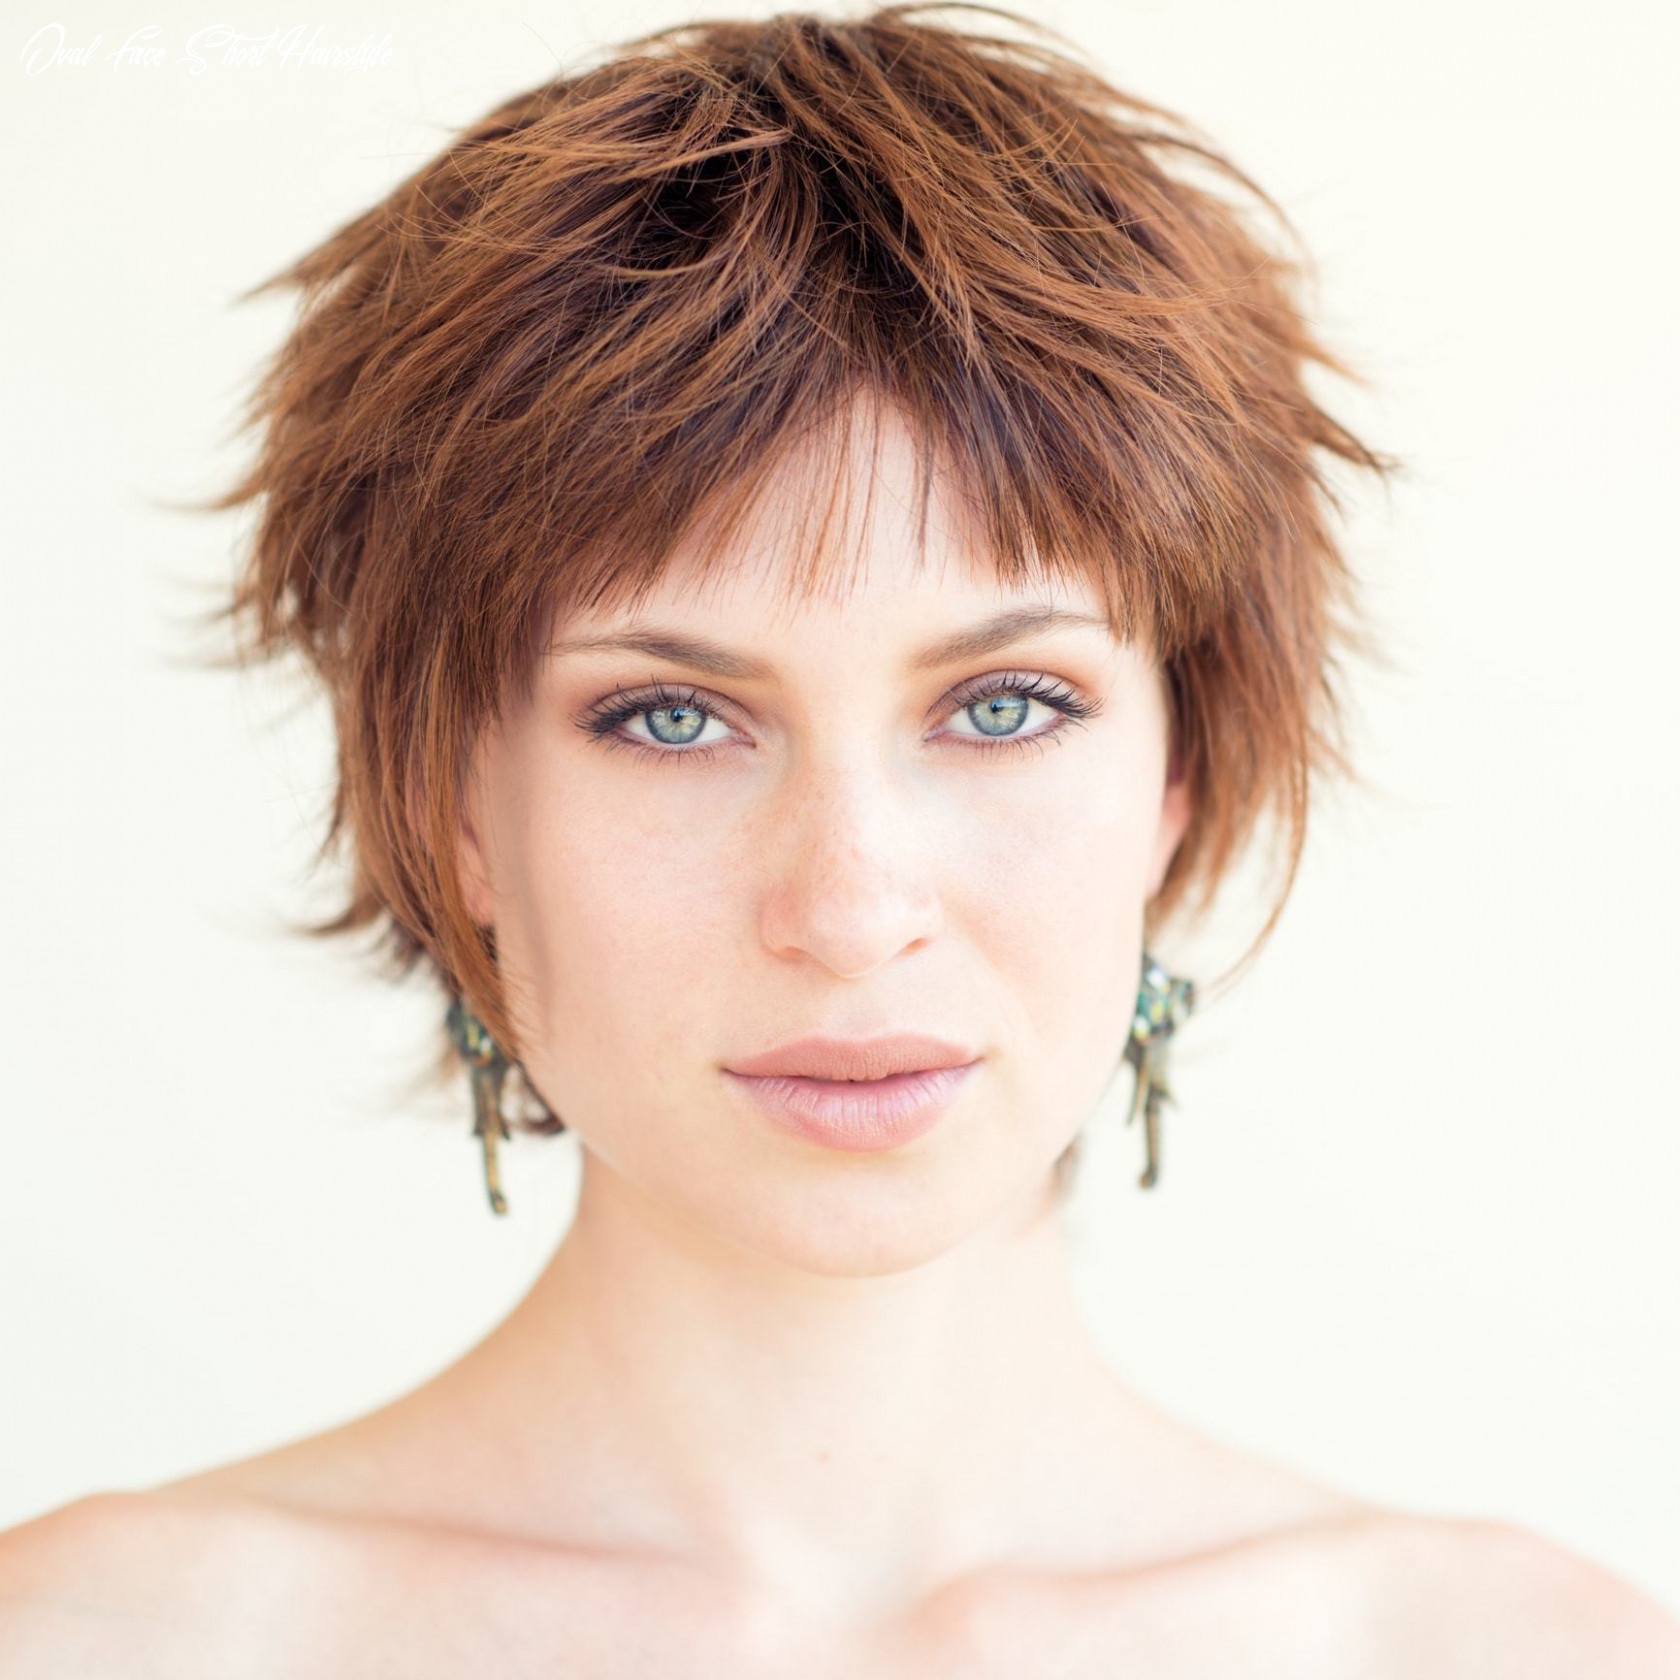 Short haircuts for oval faces for women | all things hair us oval face short hairstyle